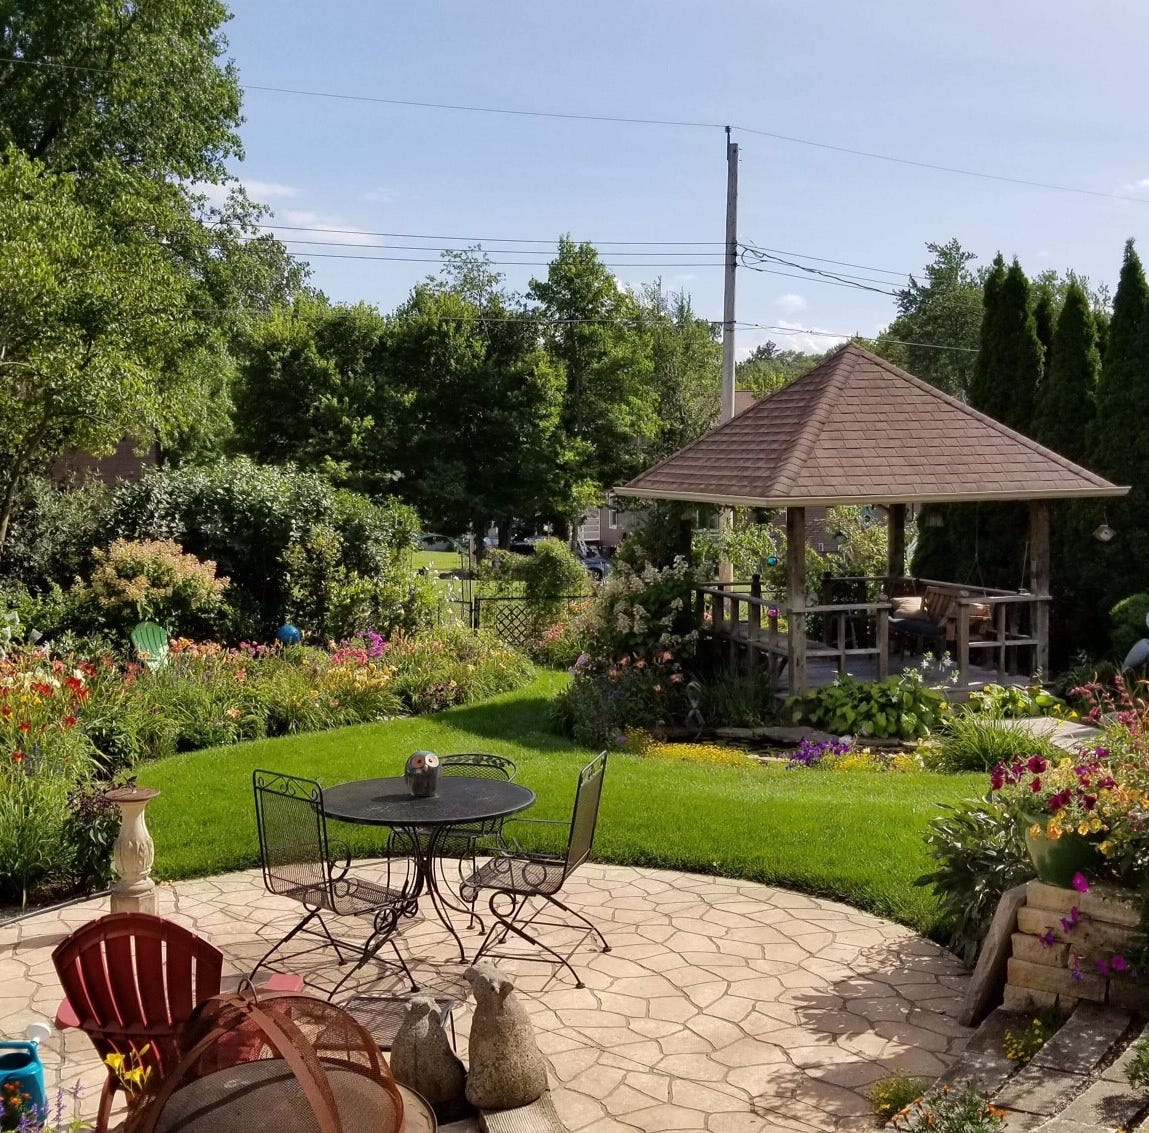 From lily pads to roses, this Iowa City backyard garden is one to behold